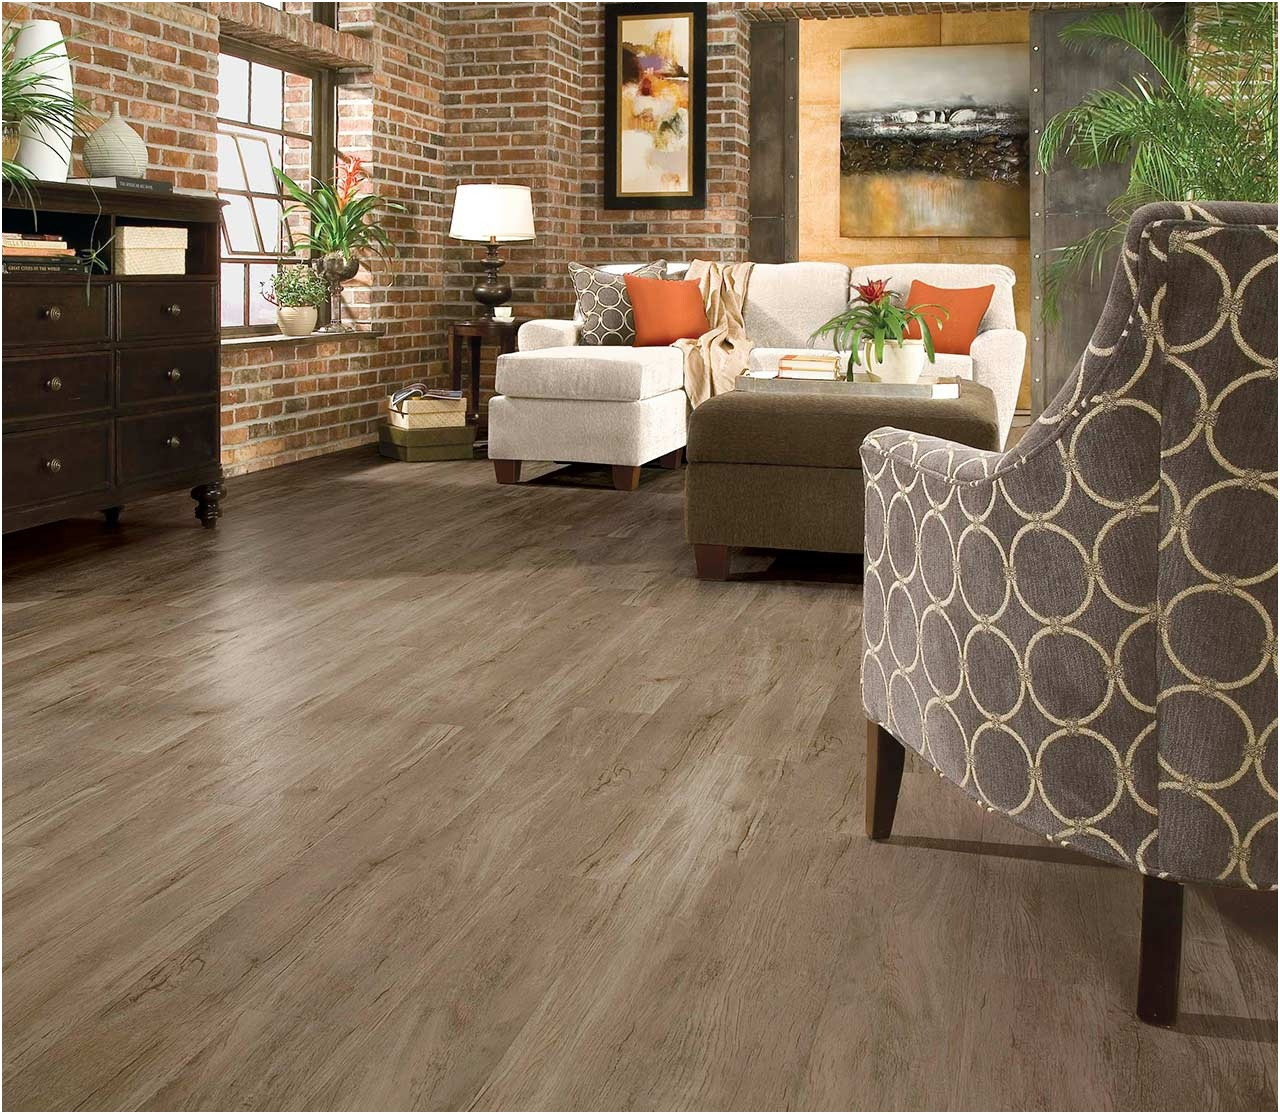 armstrong hickory hardwood flooring of armstrong reclaimed wood laminate flooring images atlantis prestige with armstrong reclaimed wood laminate flooring images atlantis prestige engineered wood plank hardwood floors mannington